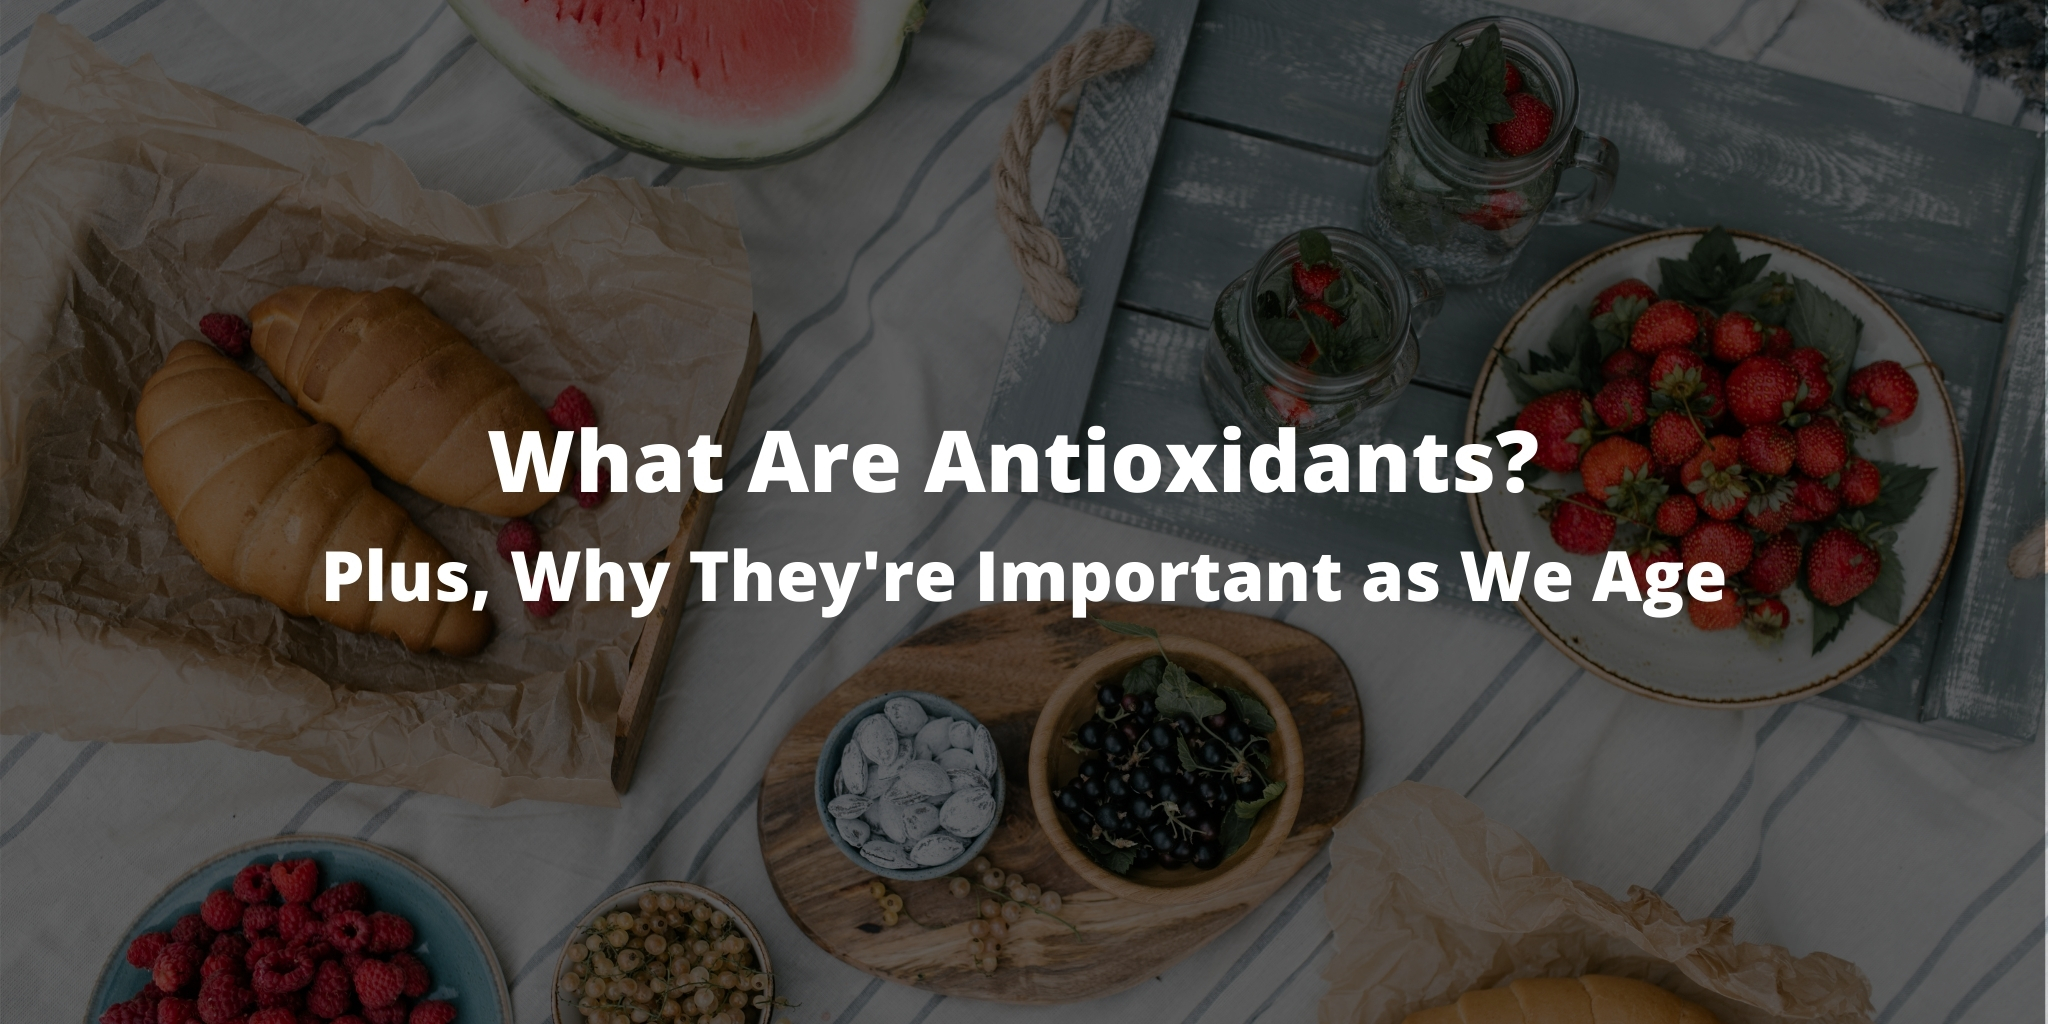 What Are Antioxidants? Plus, Why They're Important as We Age